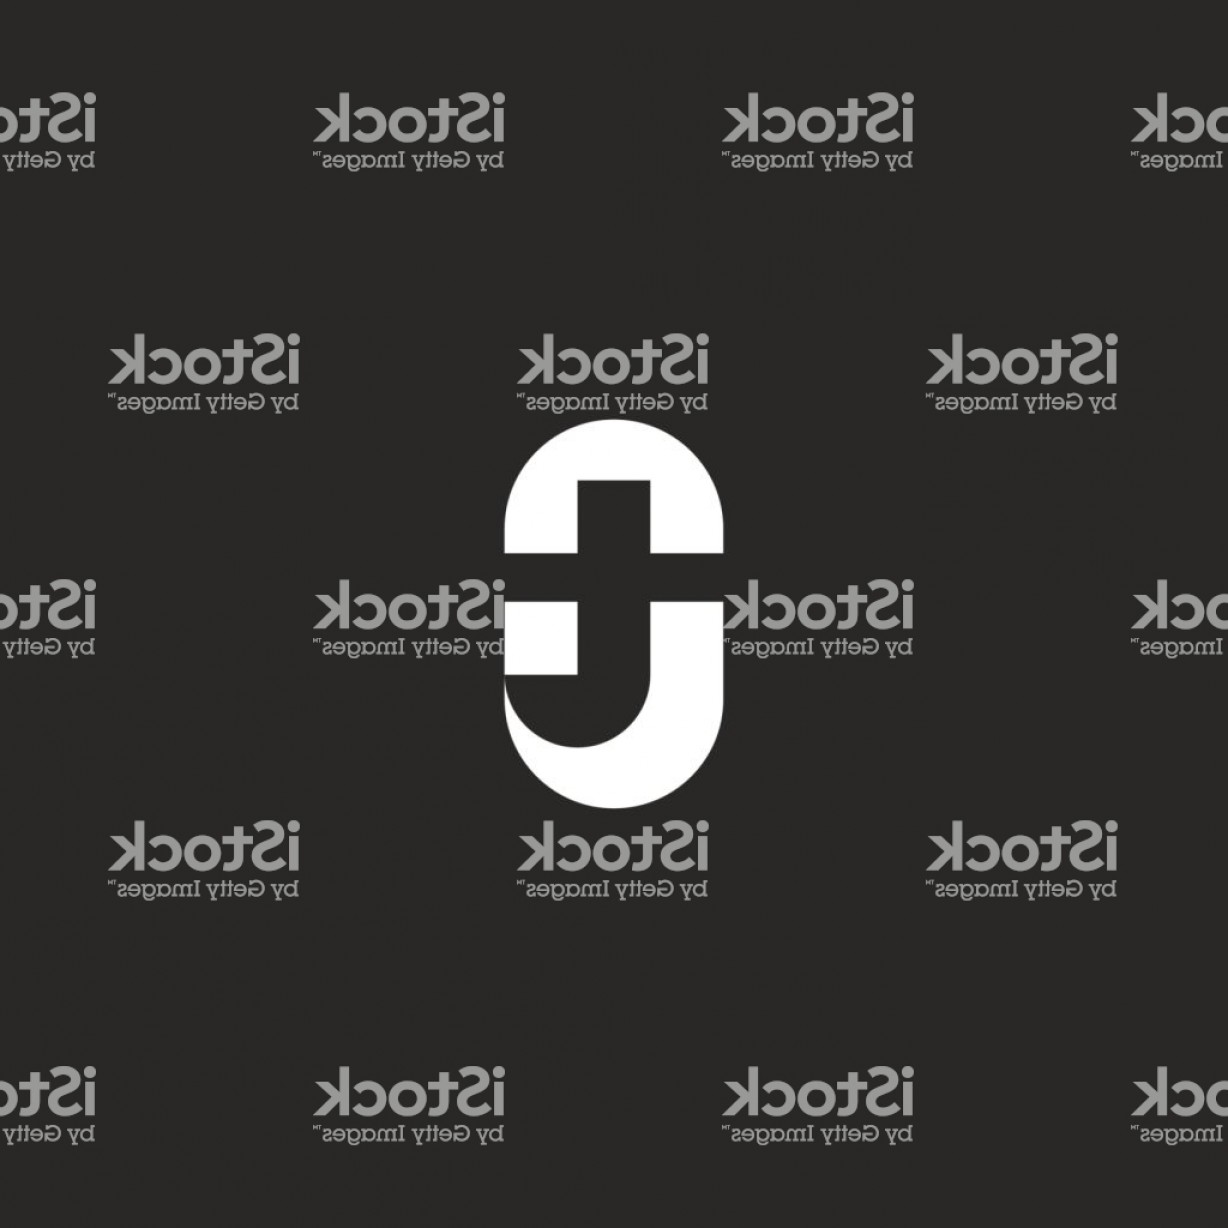 Black And White Negative Vector: Initials Ot Letters Icon Negative Space Black And White Style Two Marks T O Together Gm